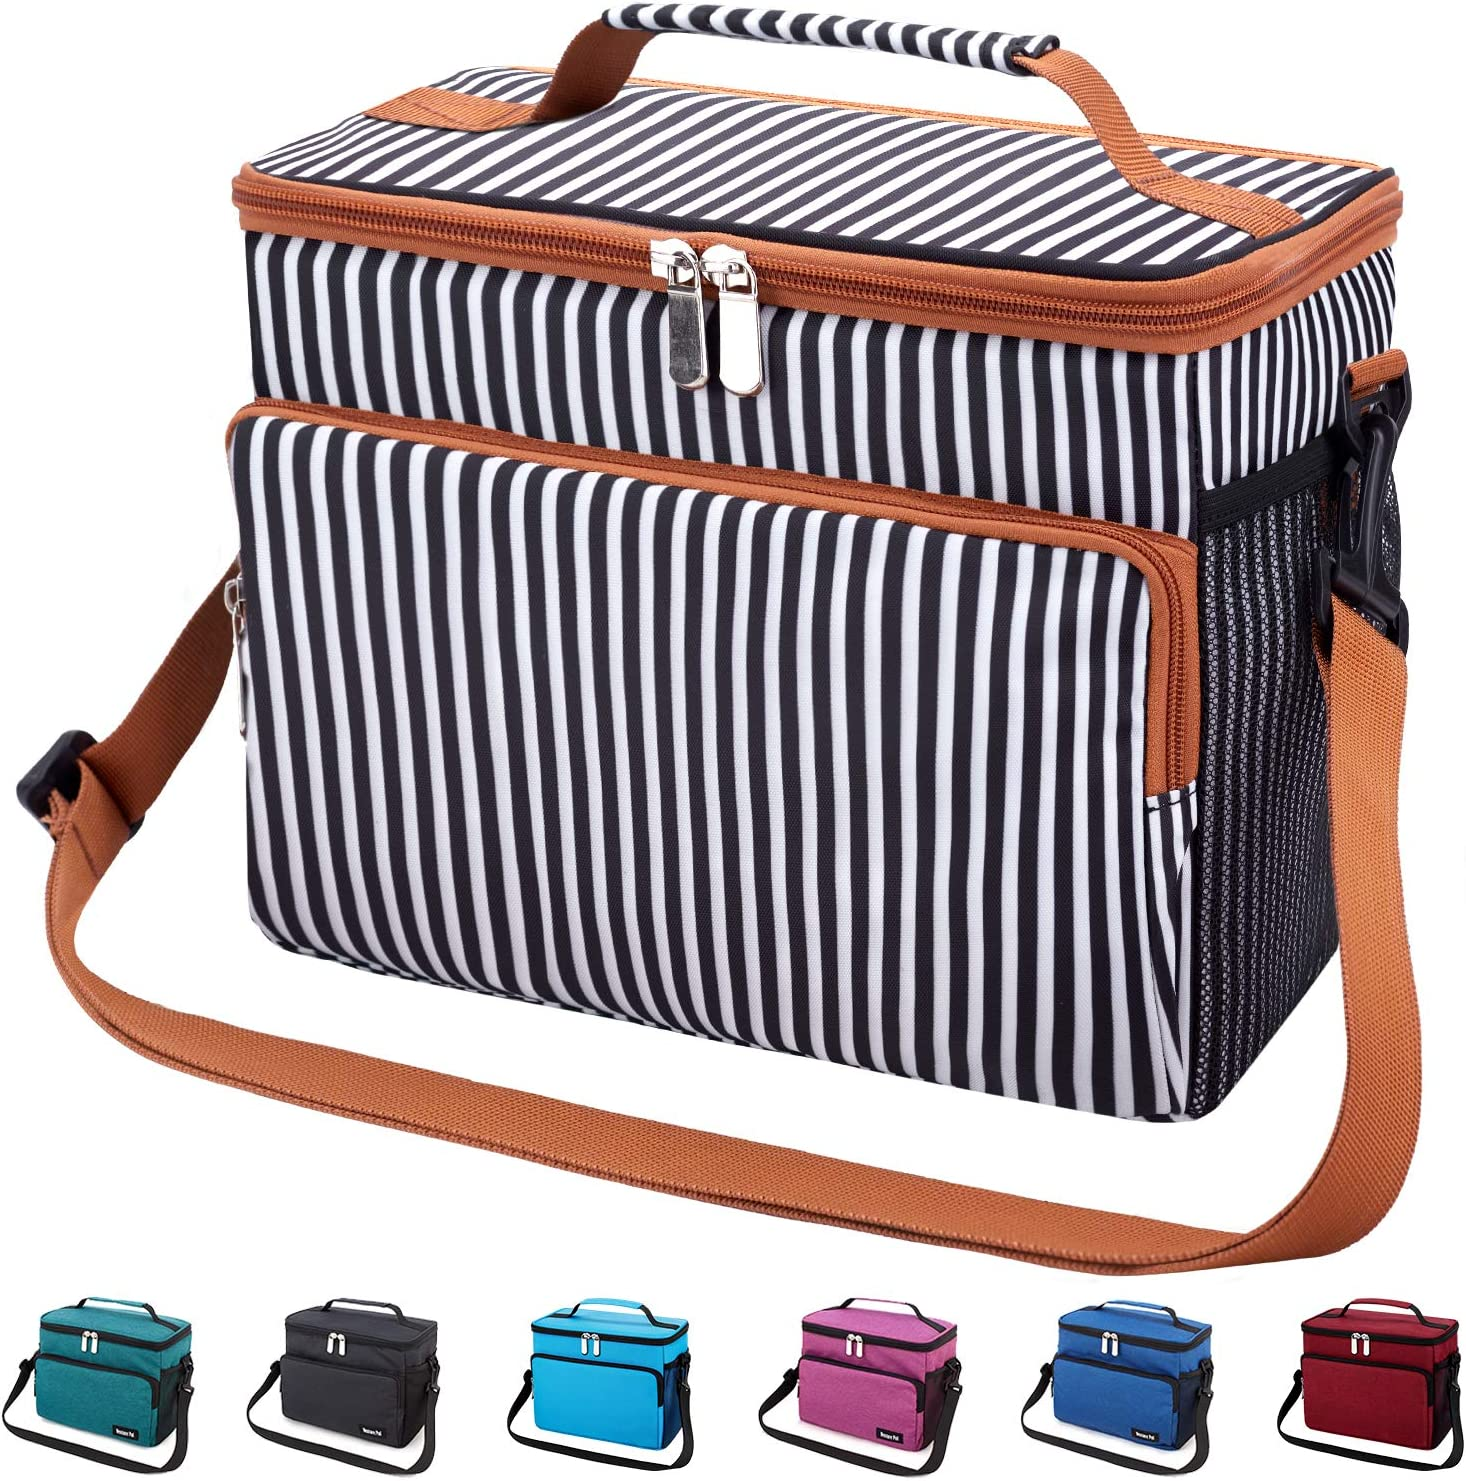 Venture Pal  Reusable Insulated Cooler Lunch Bag $14.44 Coupon